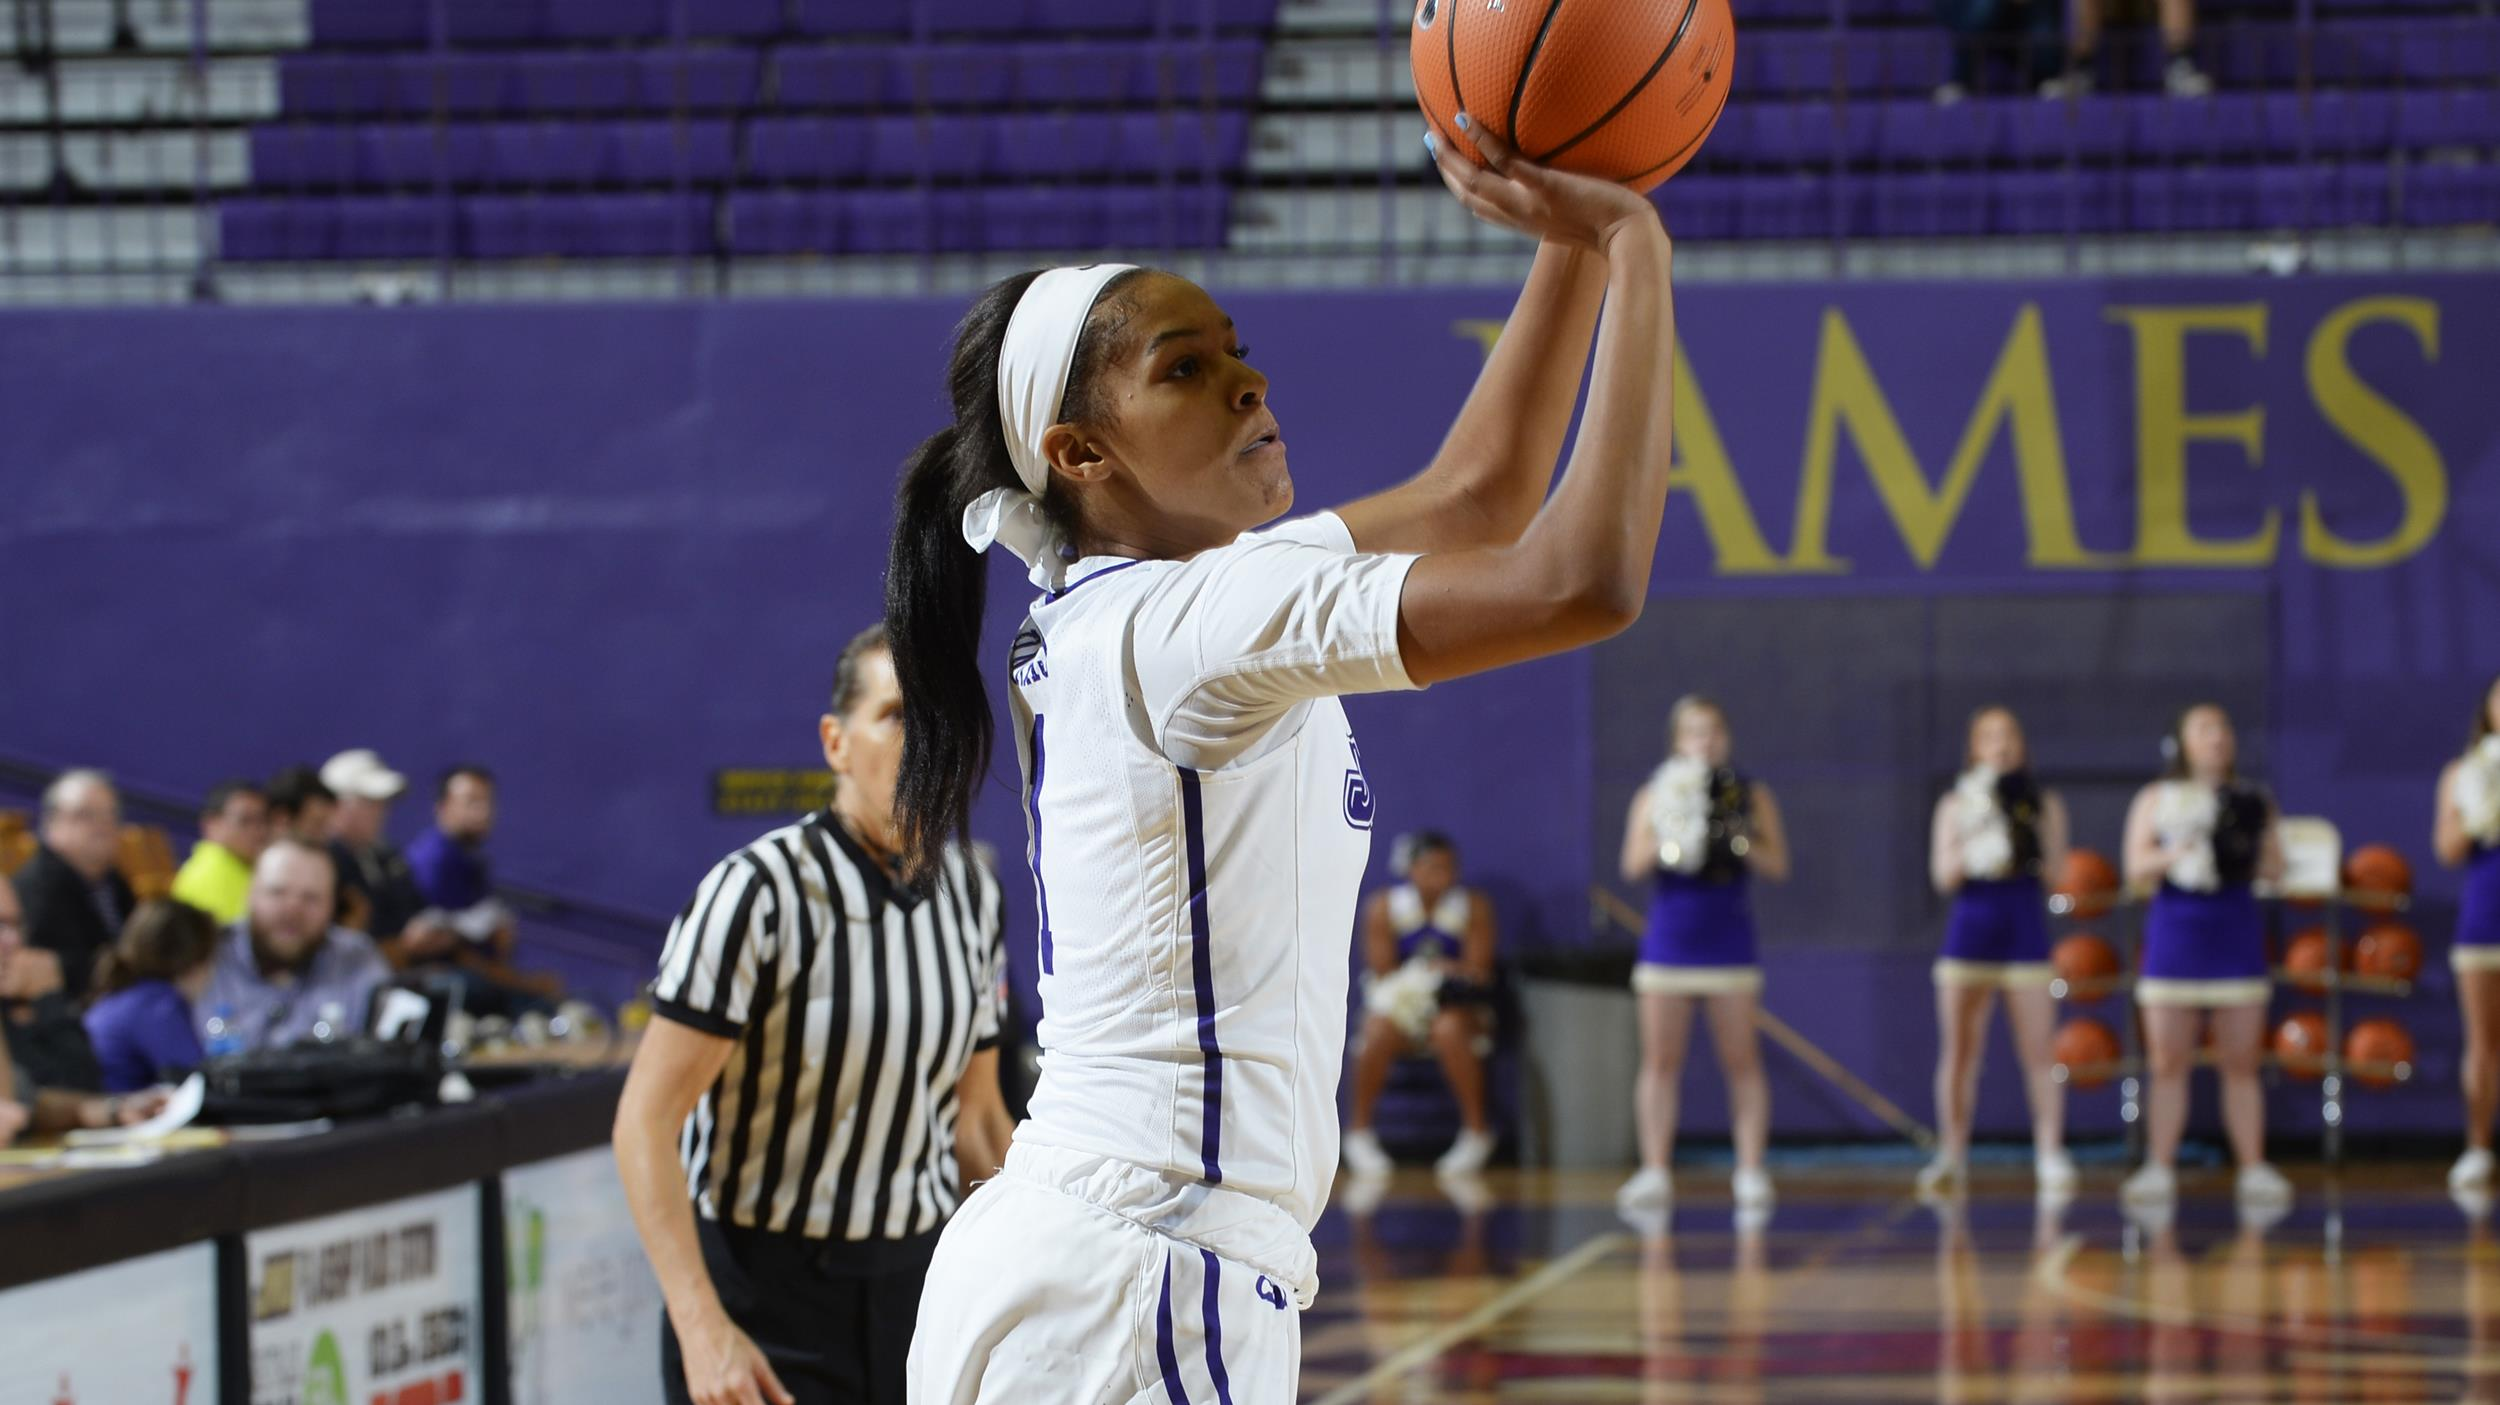 Women's Basketball: JMU Falls 81-64 at St. John's)